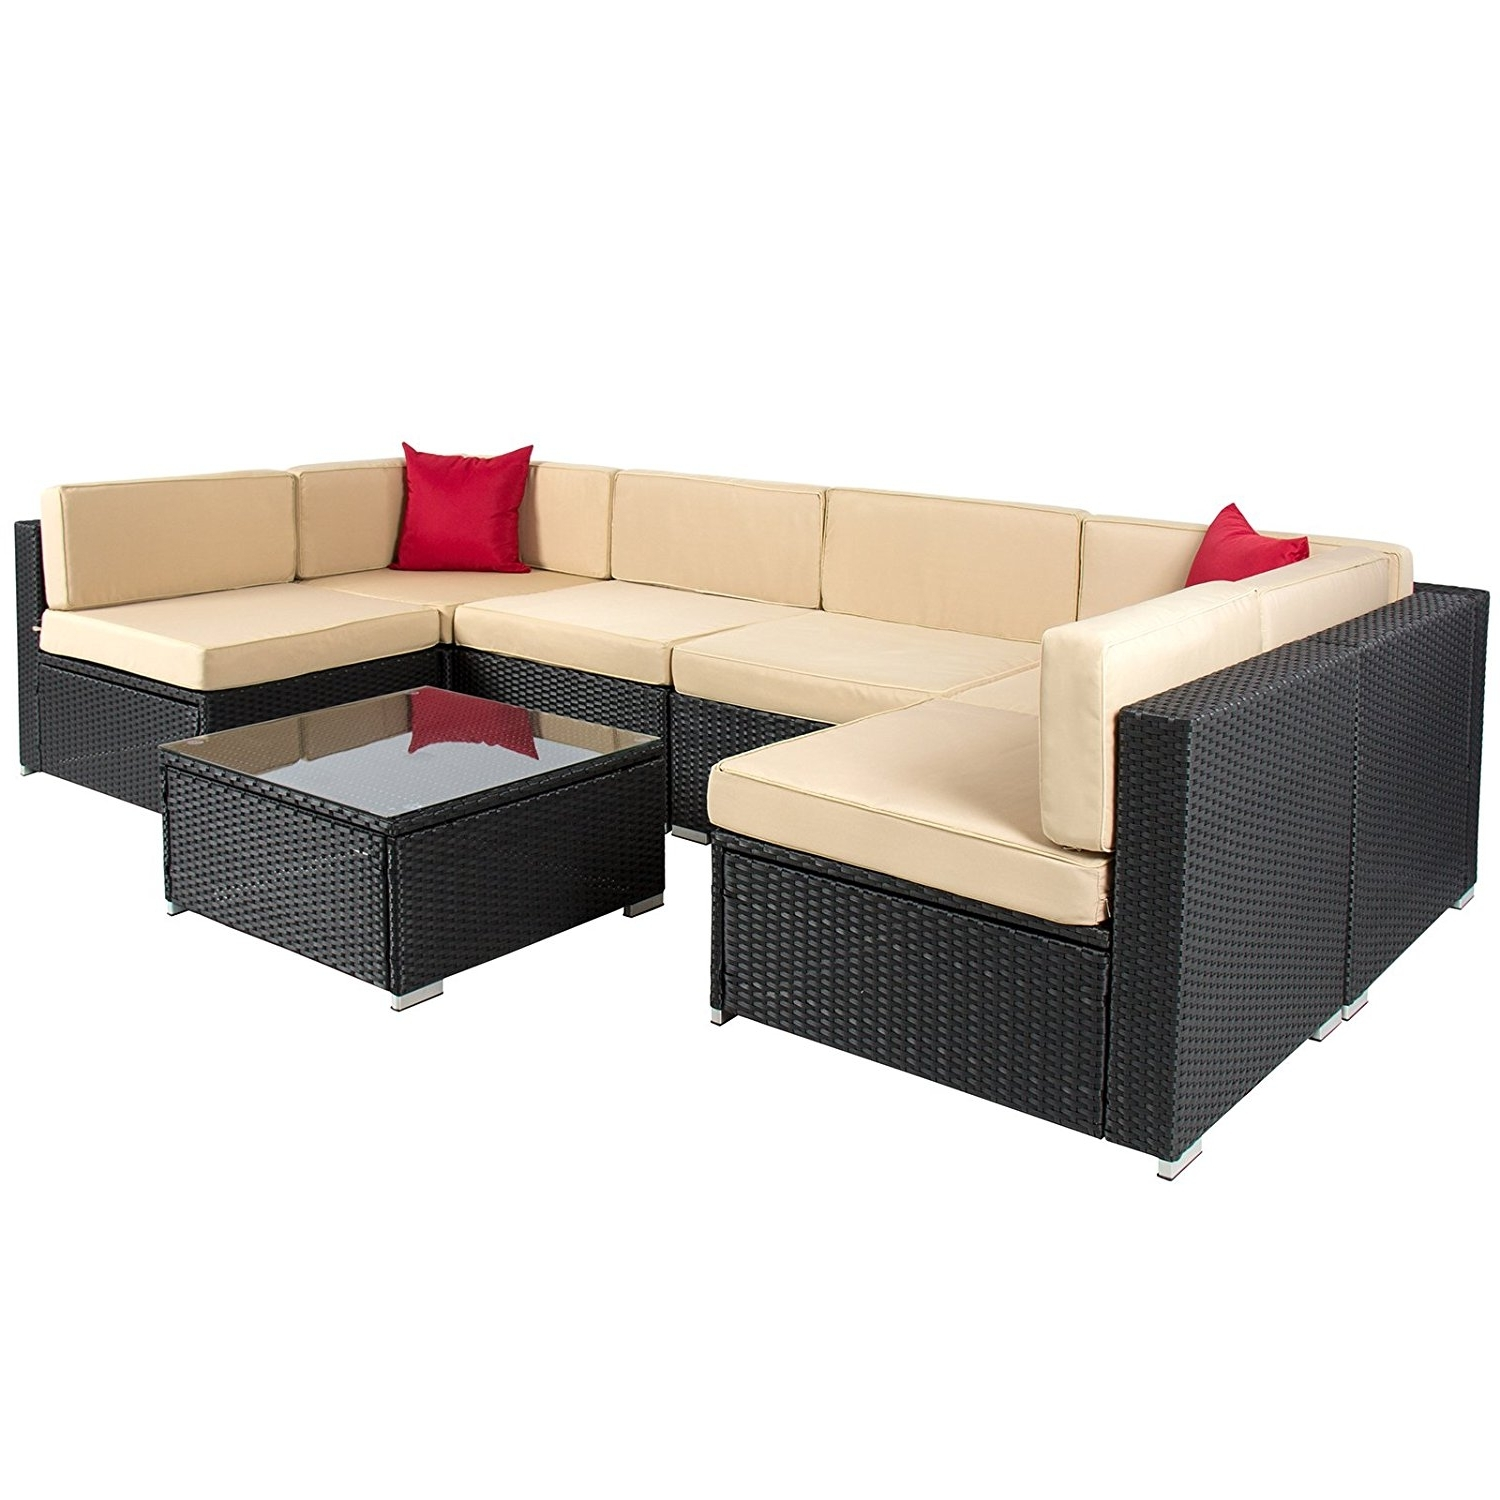 Preferred Amazon: Best Choiceproducts 7 Piece Outdoor Patio Garden Inside Outdoor Sofa Chairs (View 12 of 15)